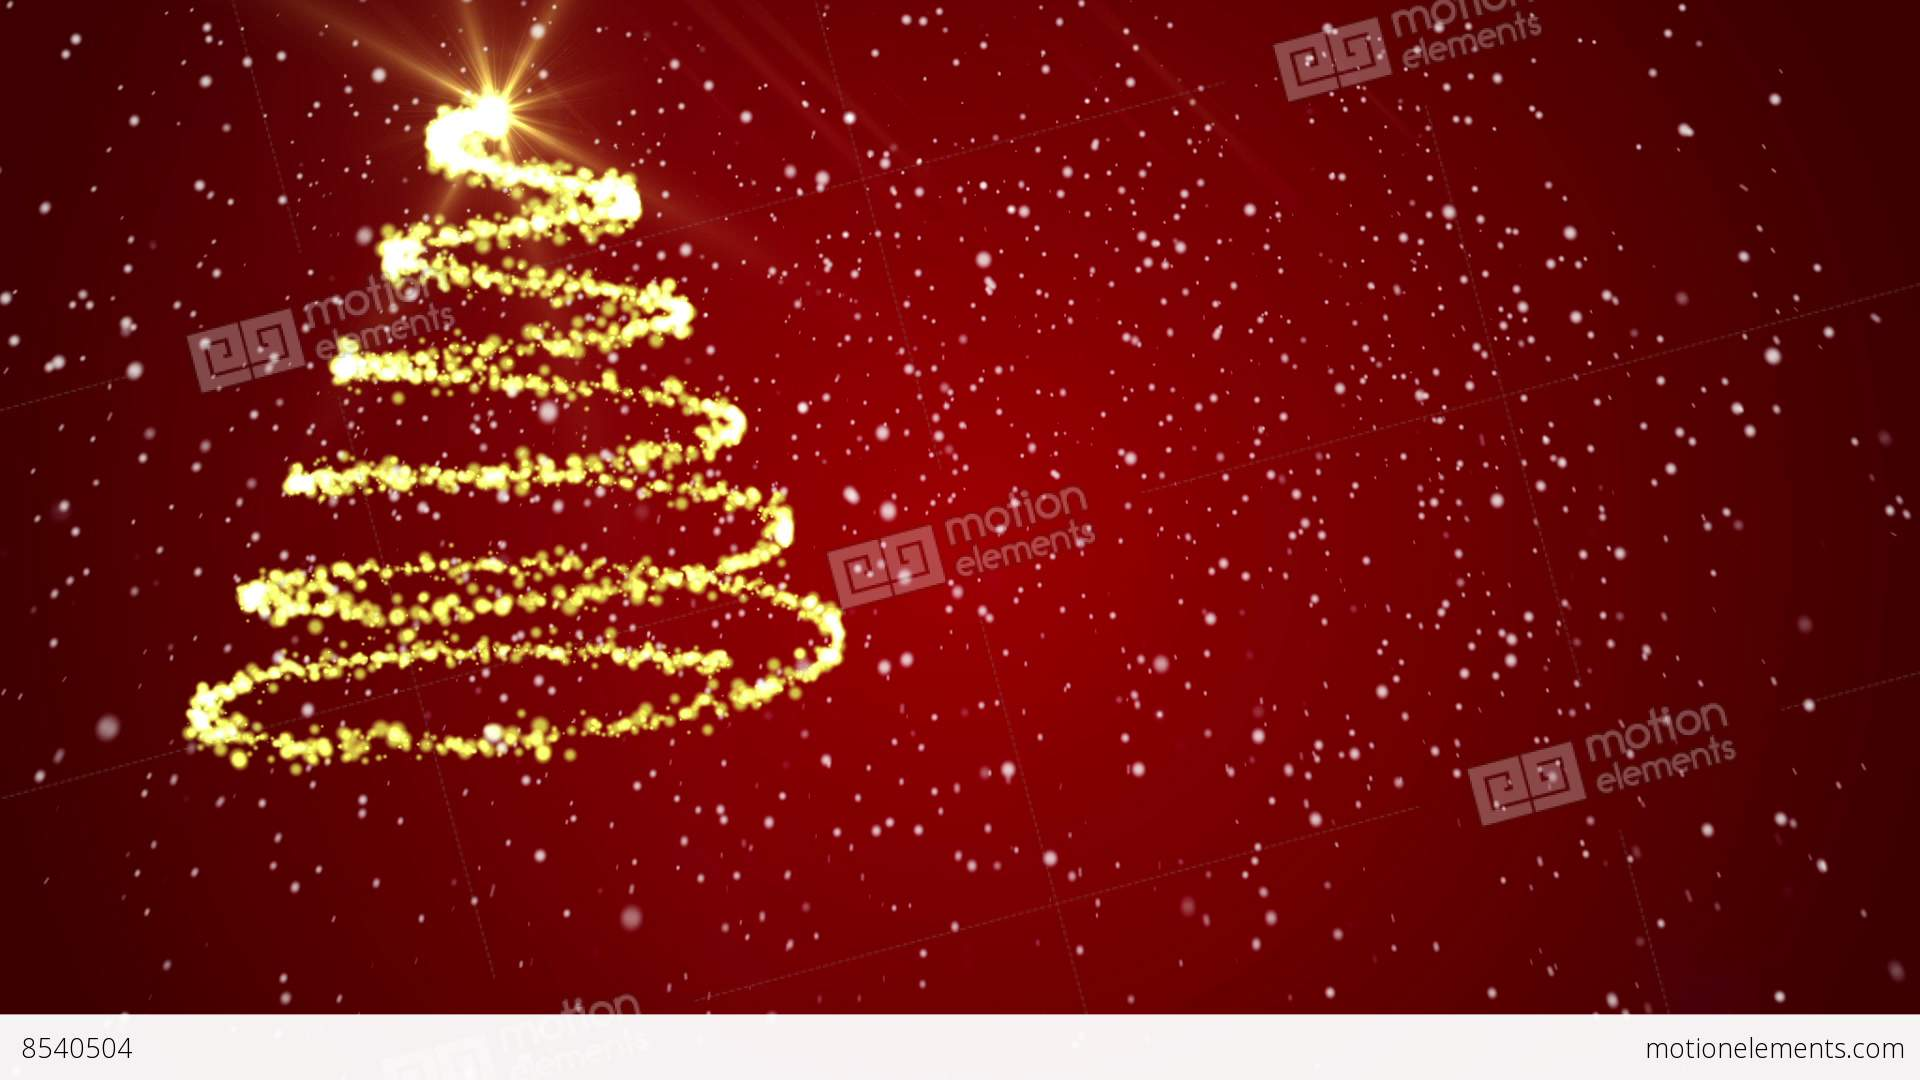 Merry Christmas Background Red Backgrounds Stock video footage | 8540504